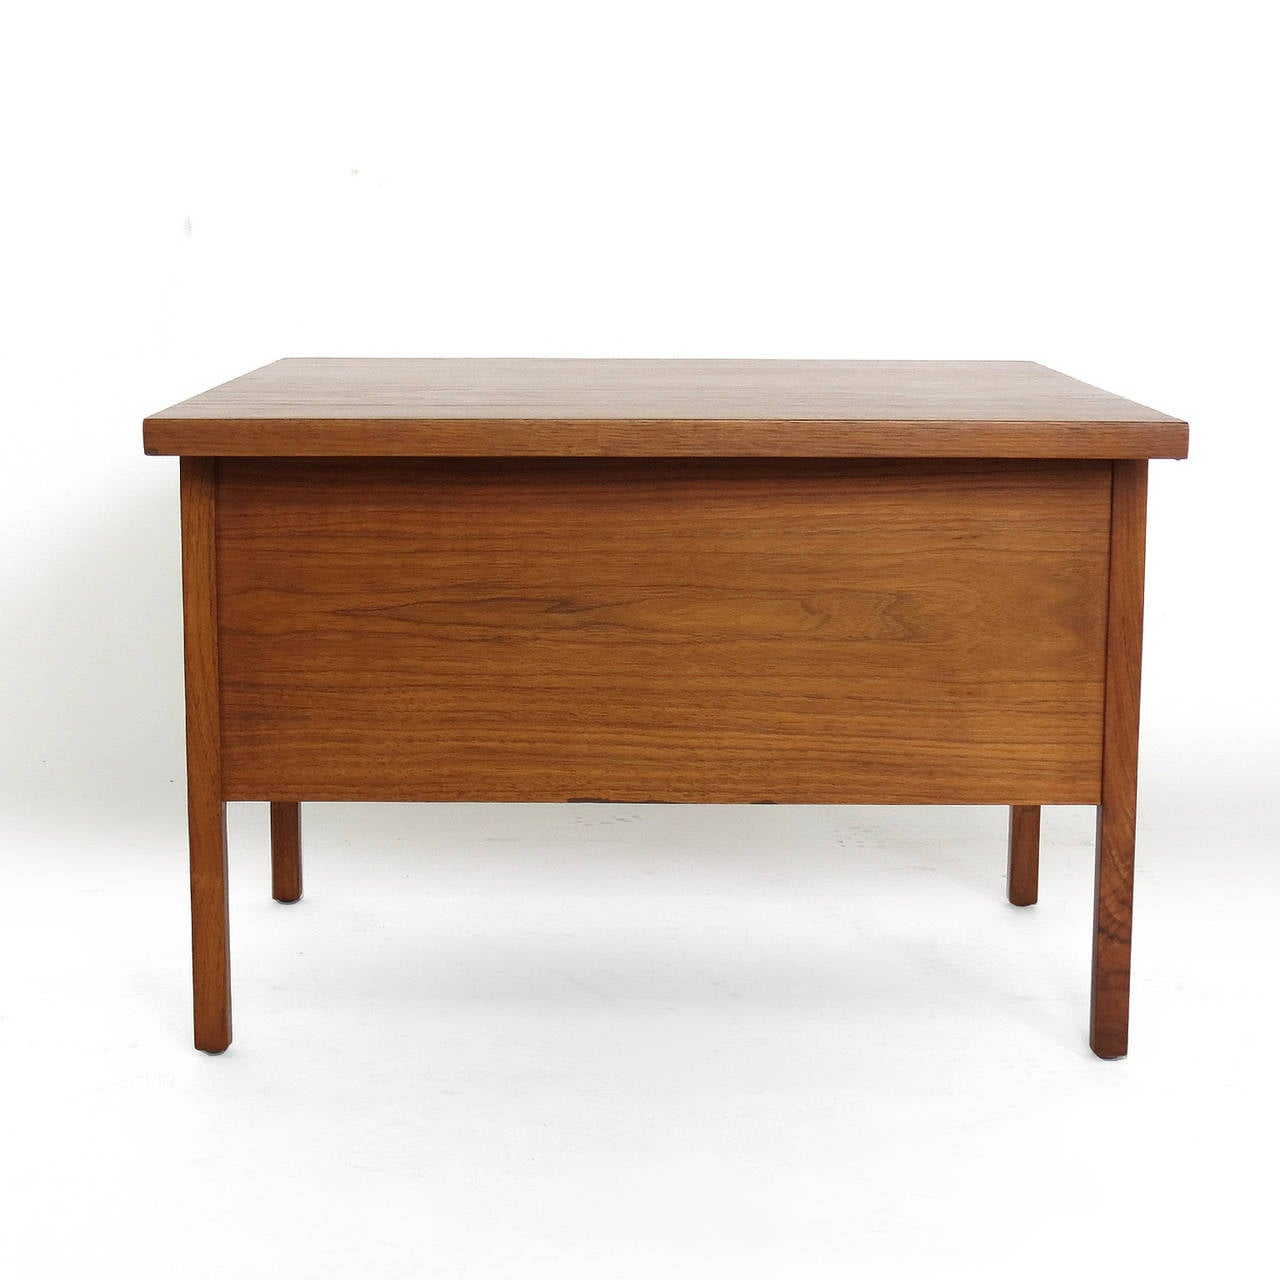 John keal coffee table with folding side tables for sale at 1stdibs Folding coffee table